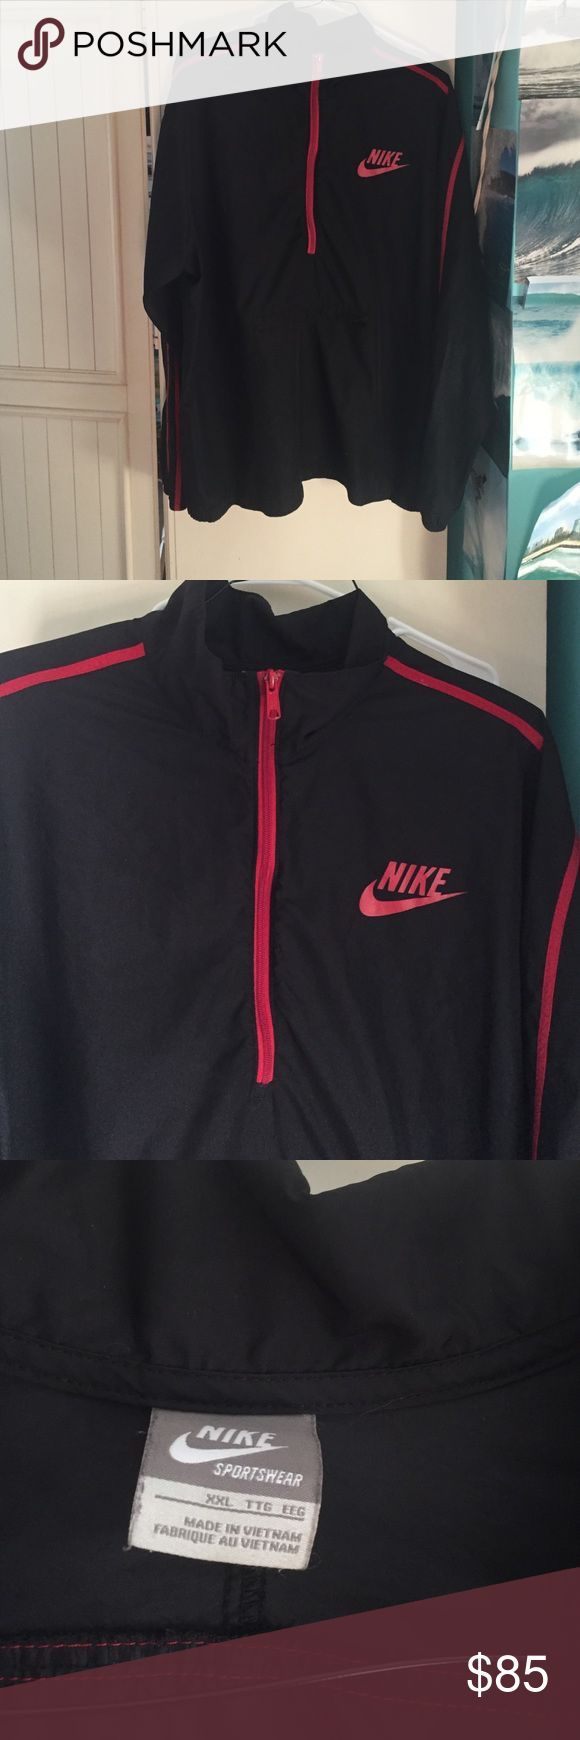 Men's Nike rain jacket Men's Nike rain jacket. Black and red has not been worn. Nike Jackets & Coats Raincoats